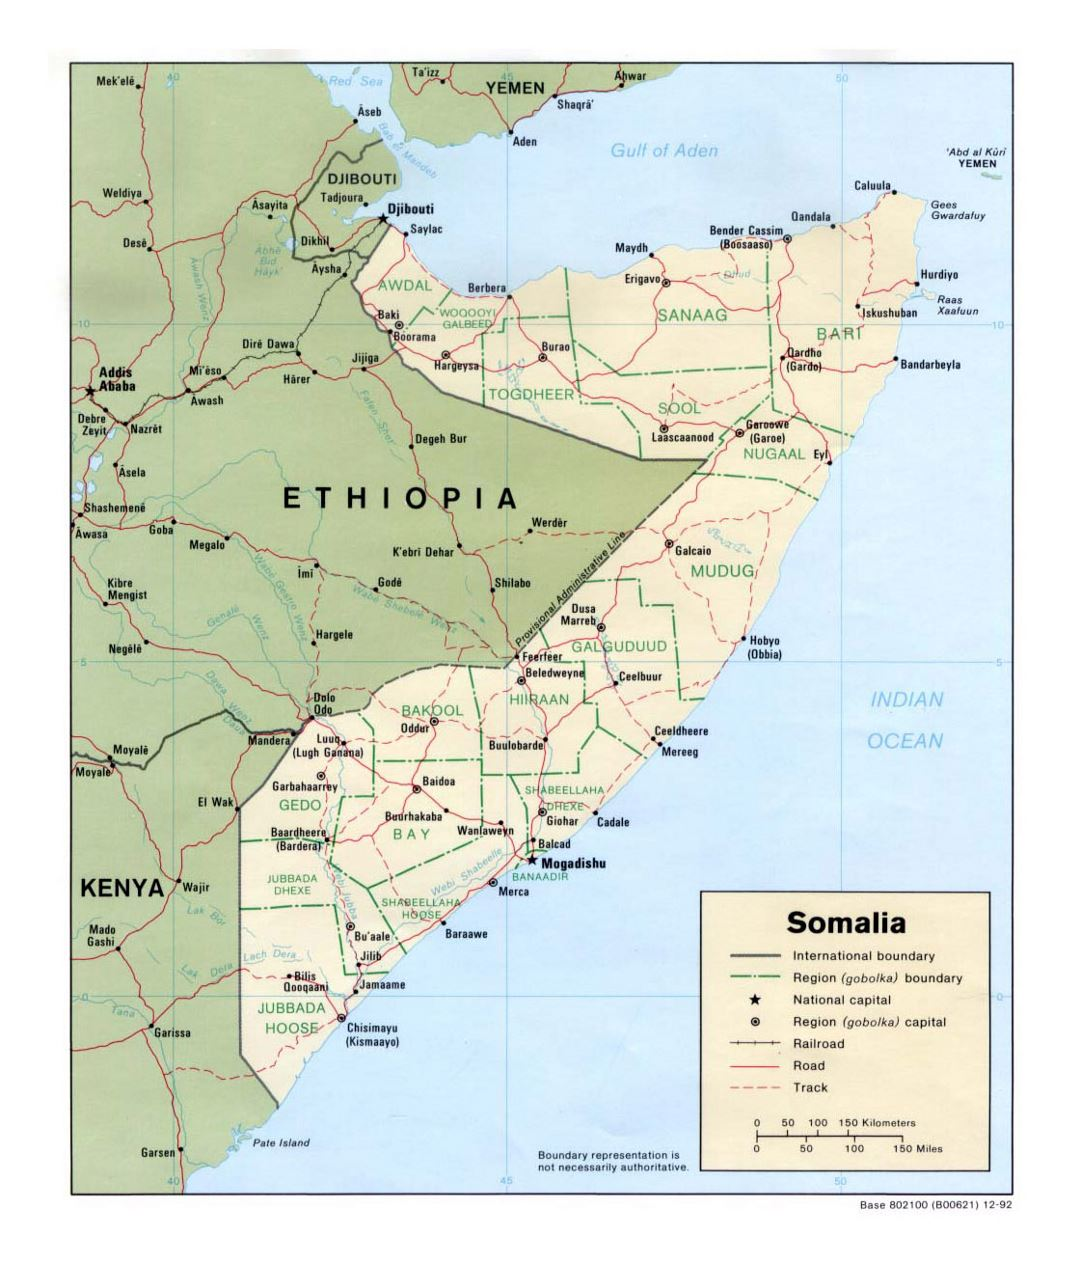 Detailed political and administrative map of Somalia with roads, railroads and major cities - 1992